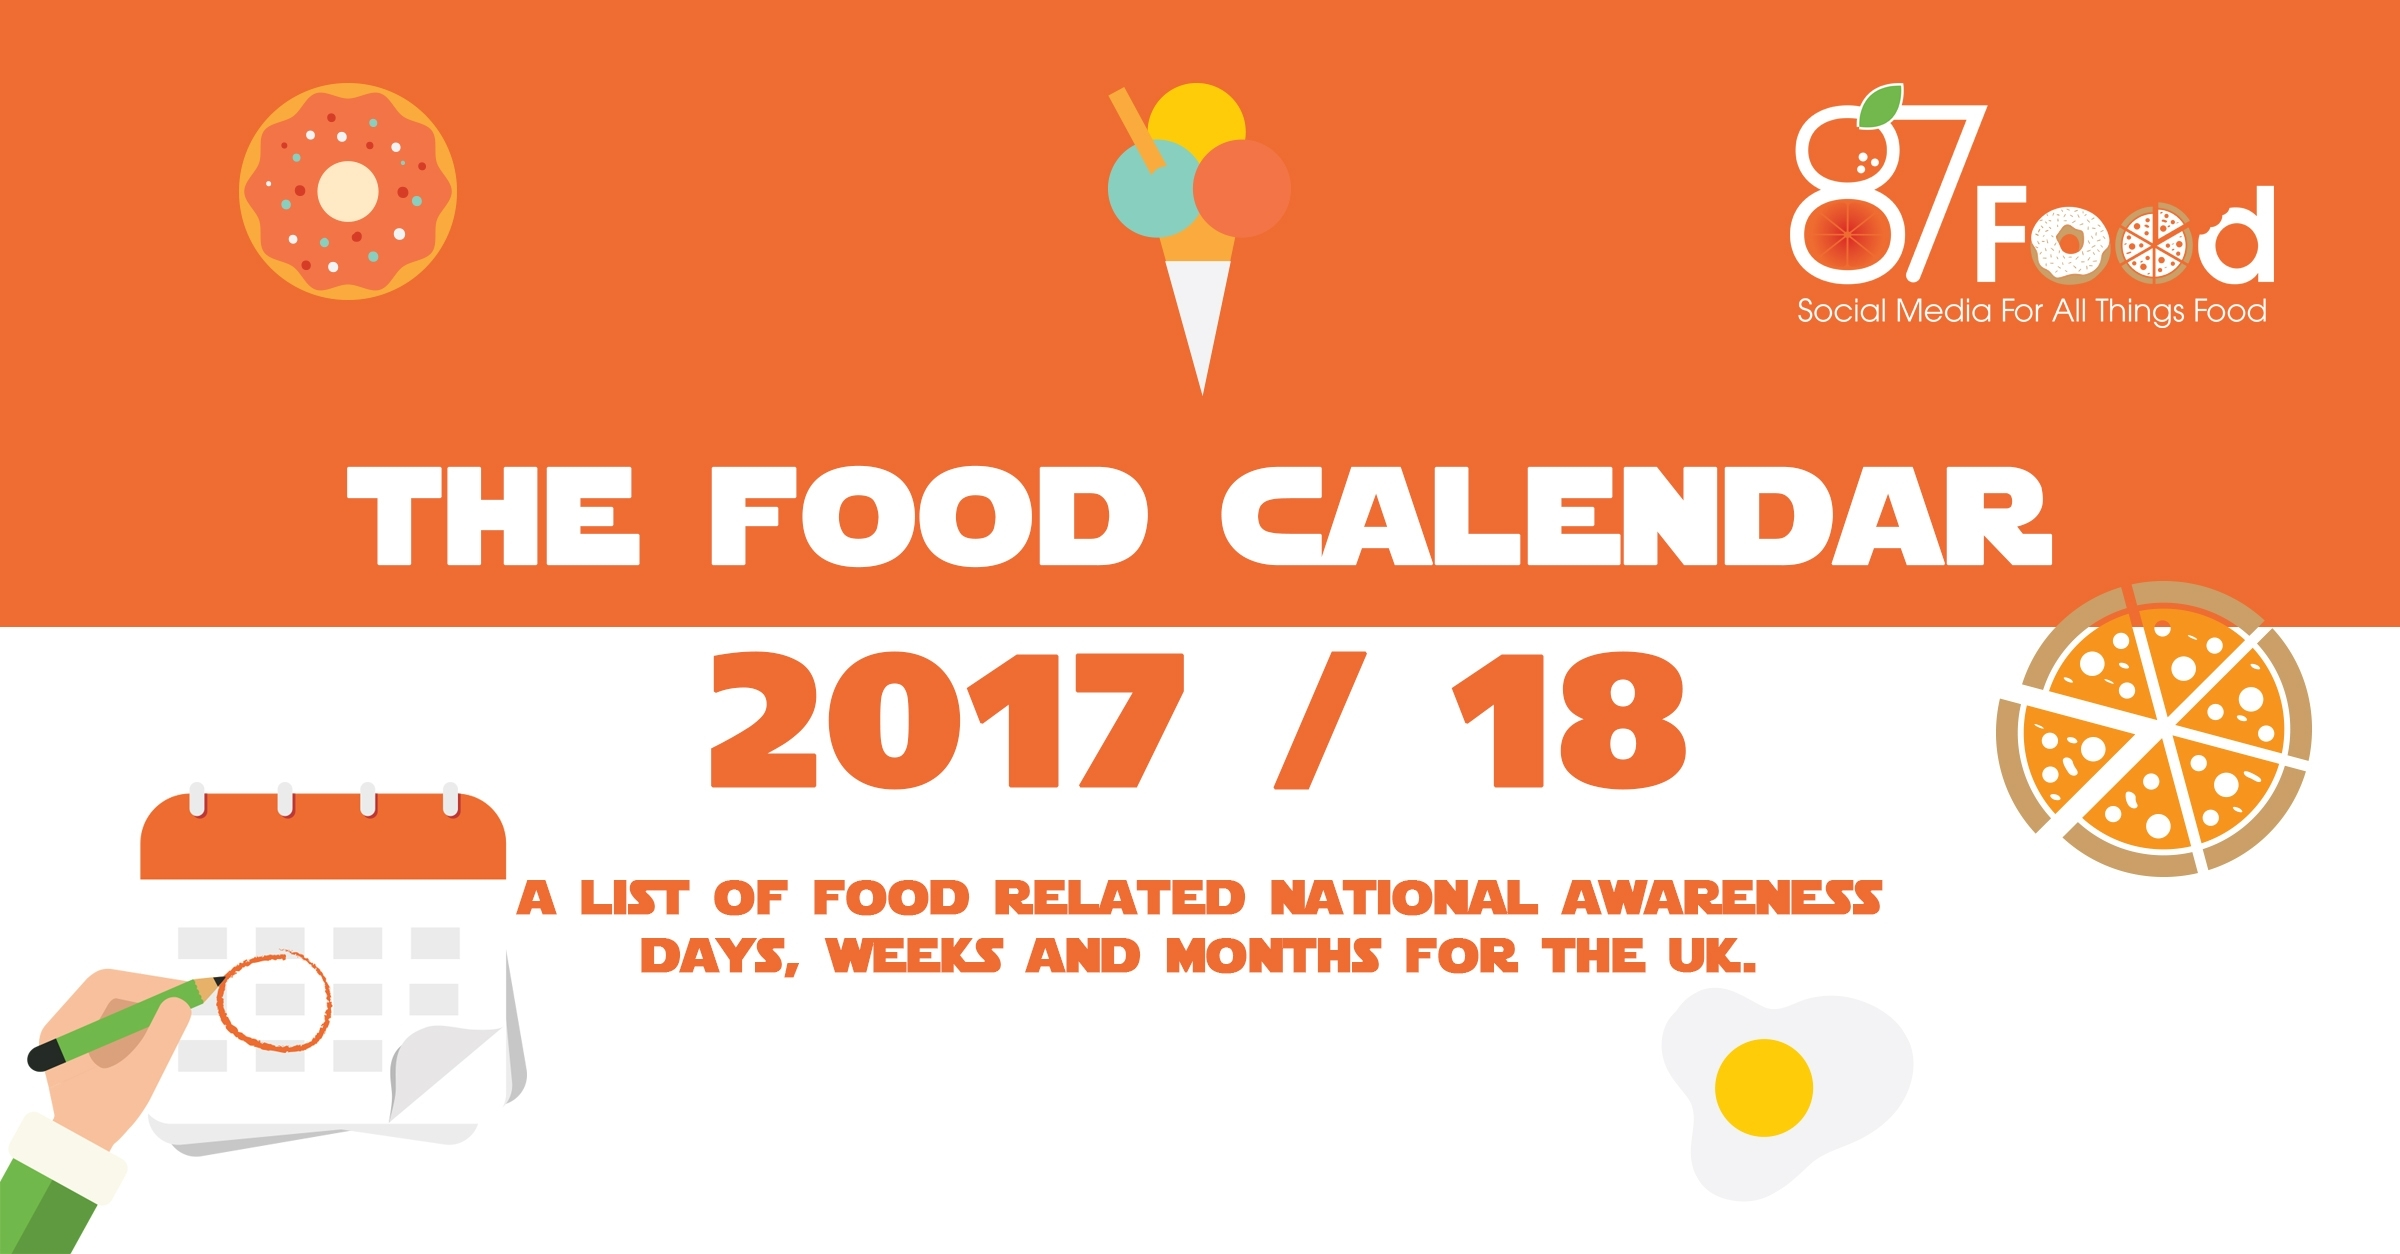 87 Foodthe Food Calendar - Food Awareness Days 2017/18 within Food Days Of The Year Calendar